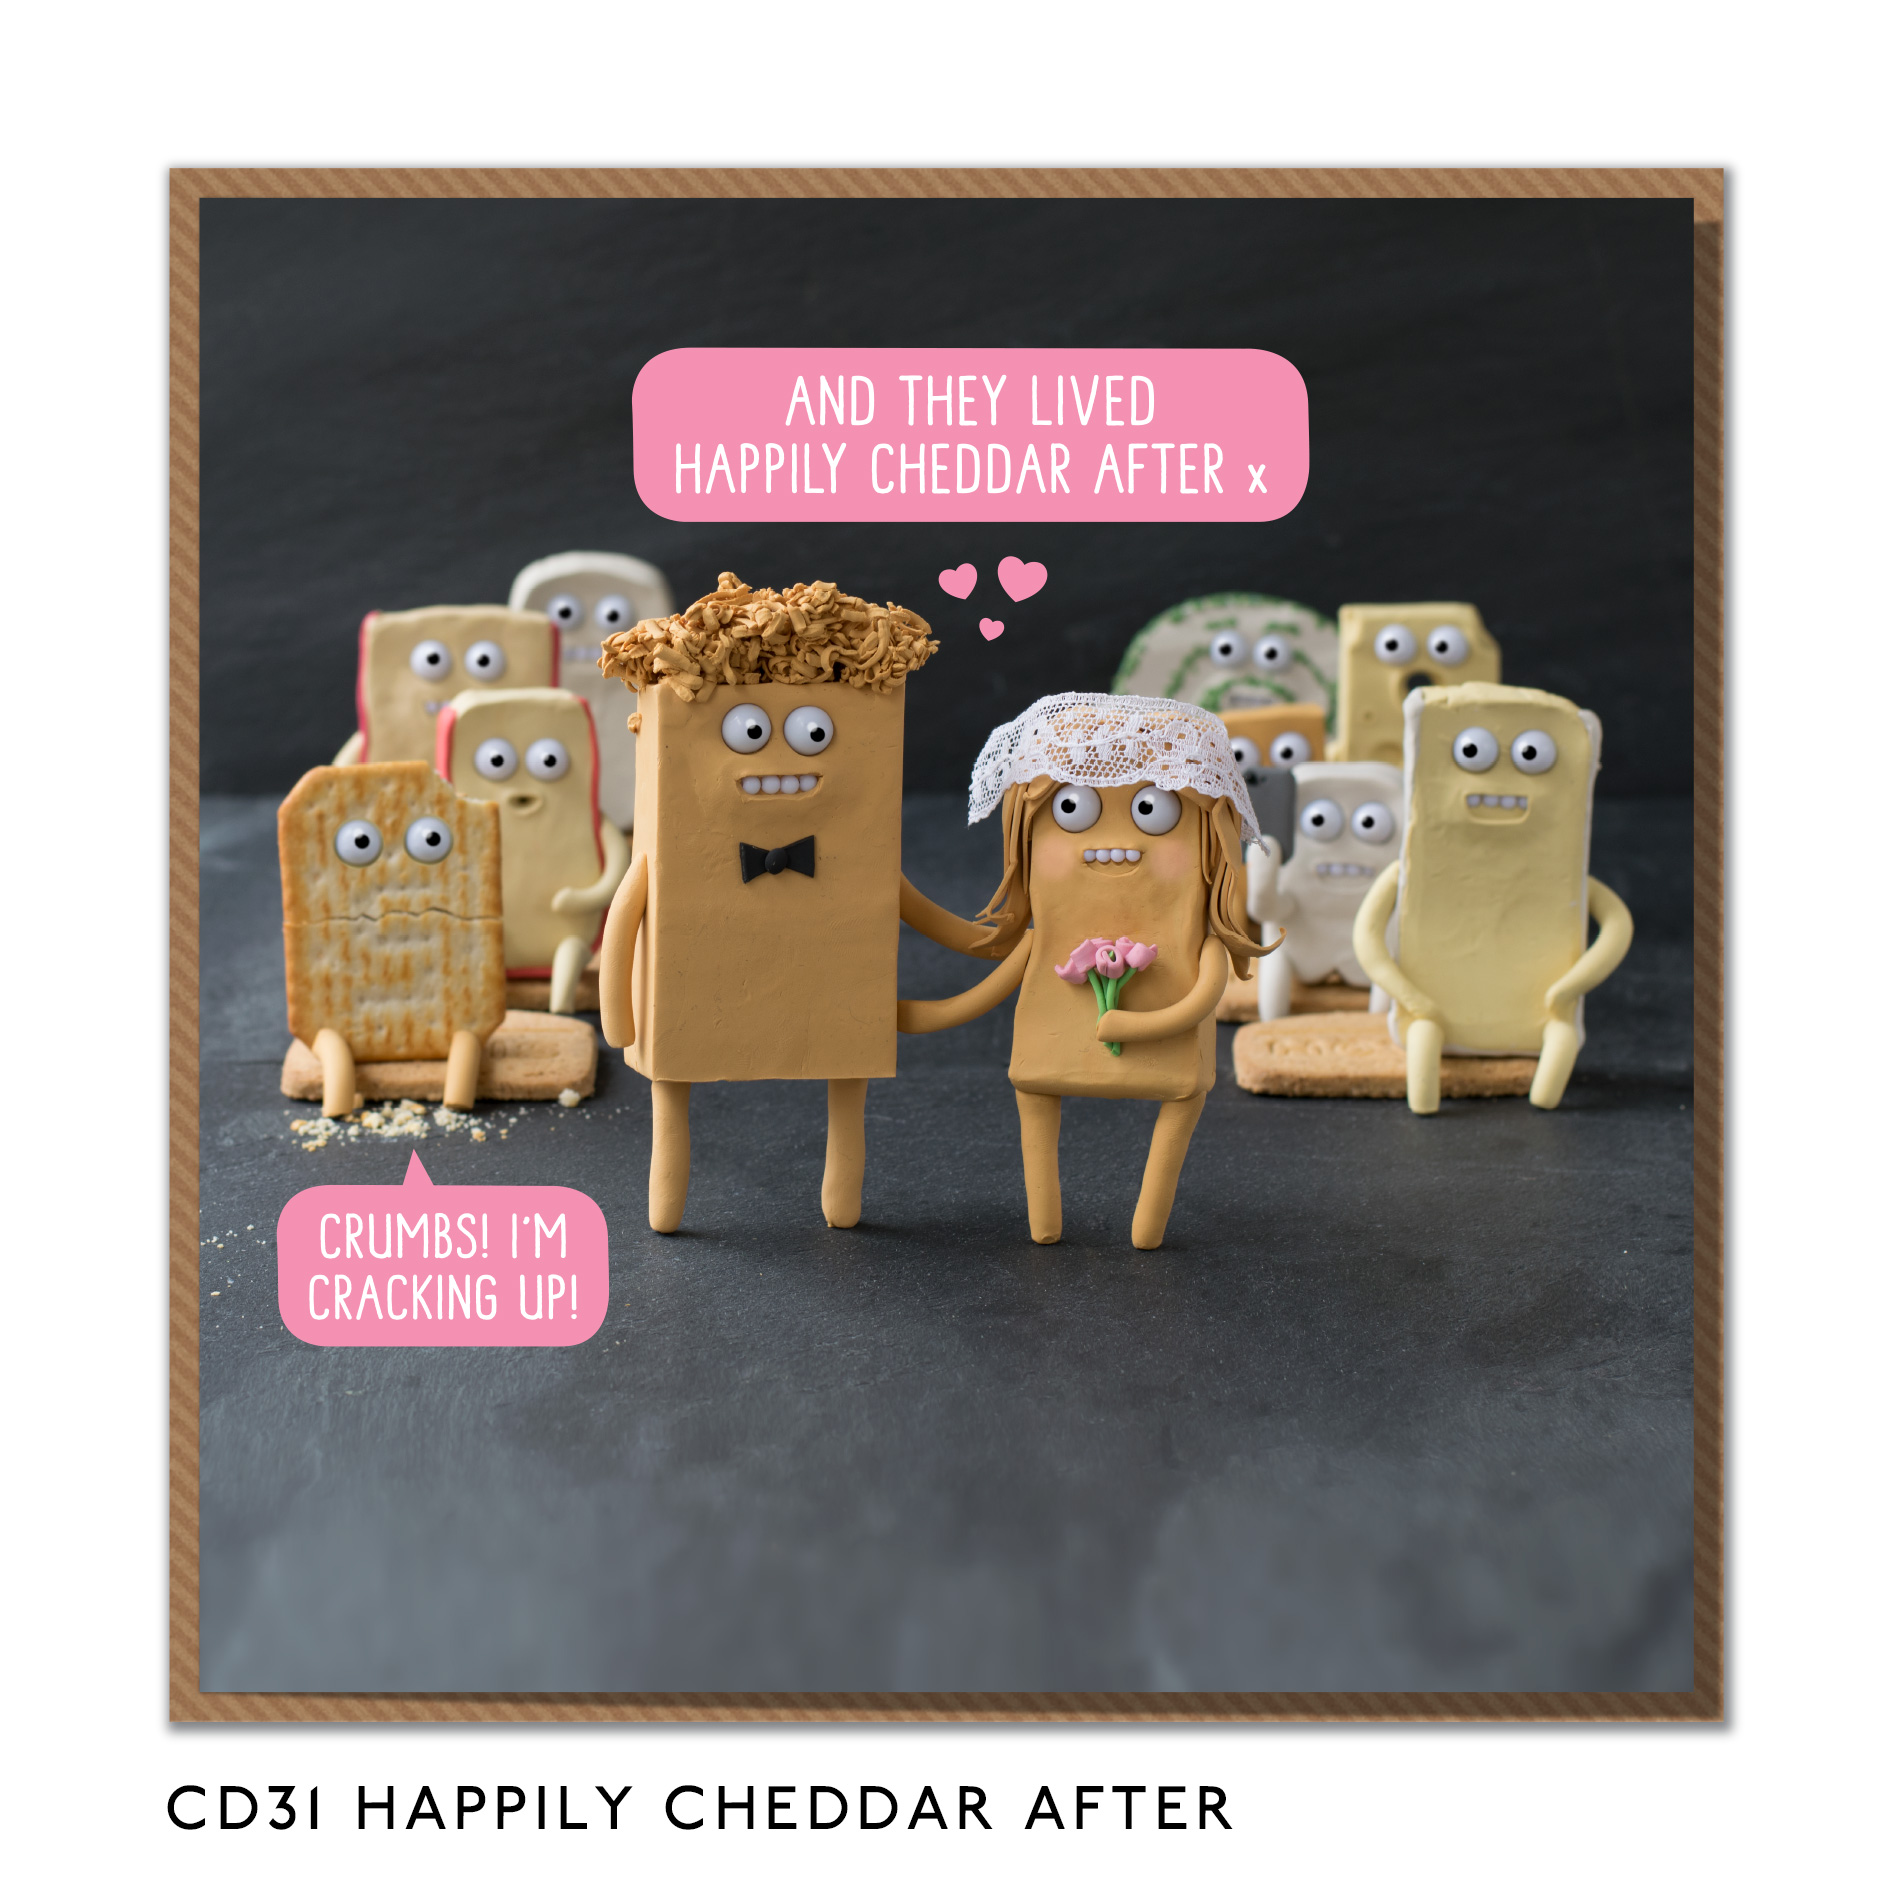 CD31-HAPPILY-CHEDDAR-AFTER.jpg